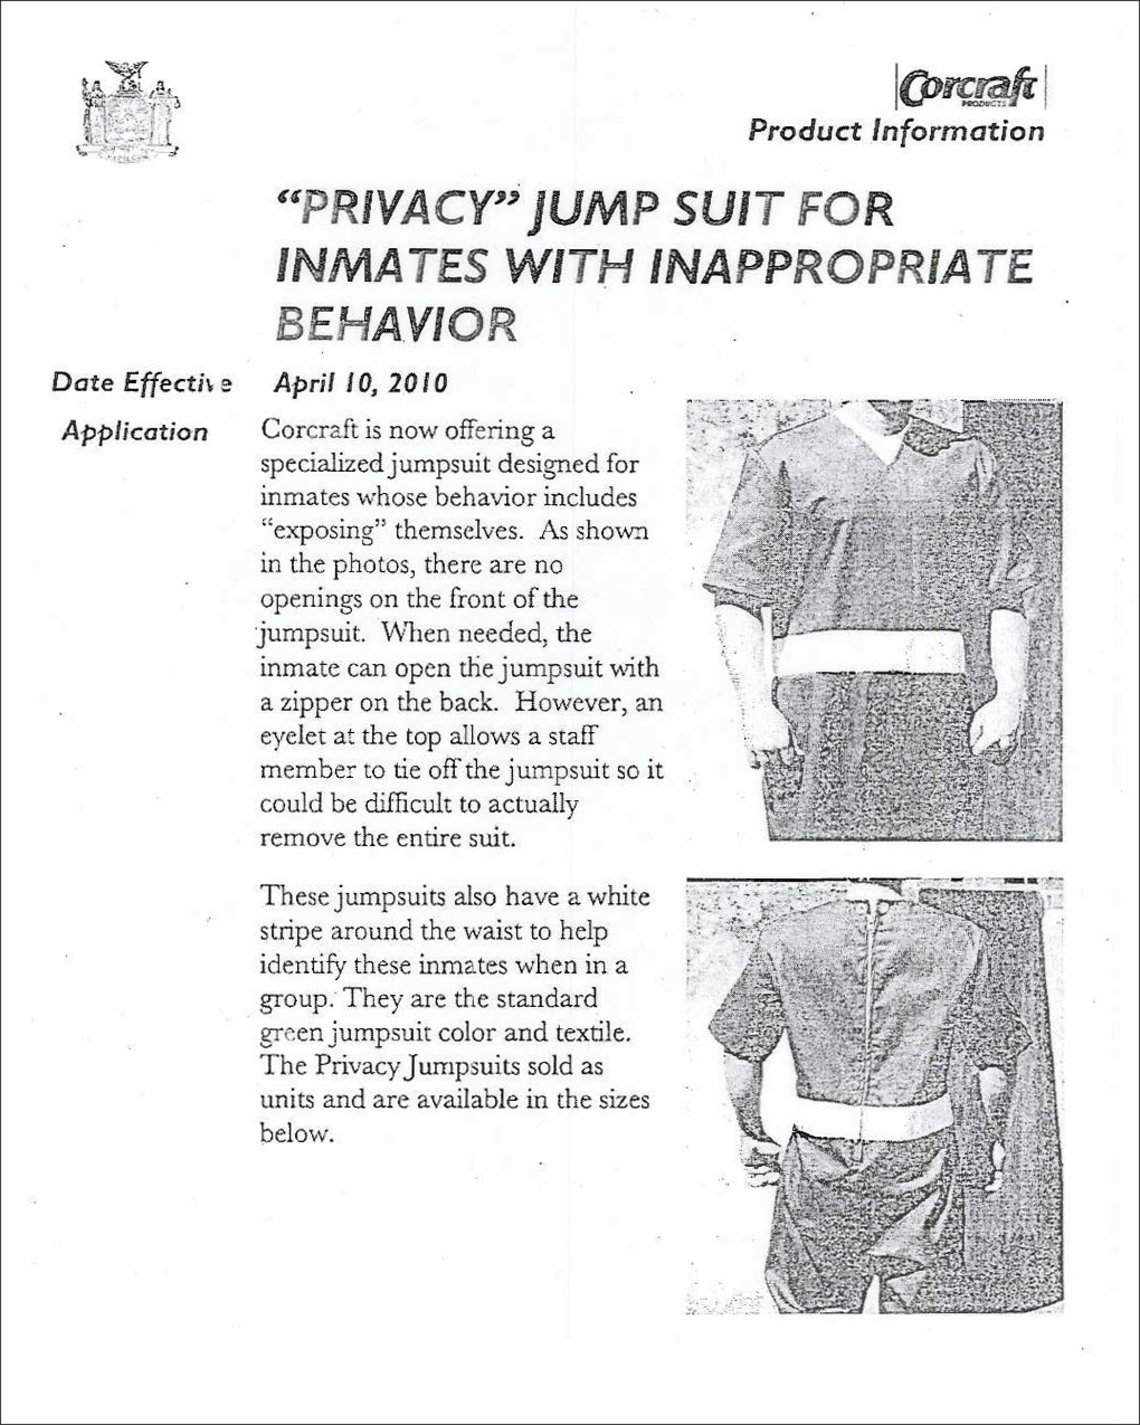 A 2010 product spec sheet for an earlier version of the privacy suit distributed by Corcraft, a division of the New York State Department of Corrections and Community Supervision.